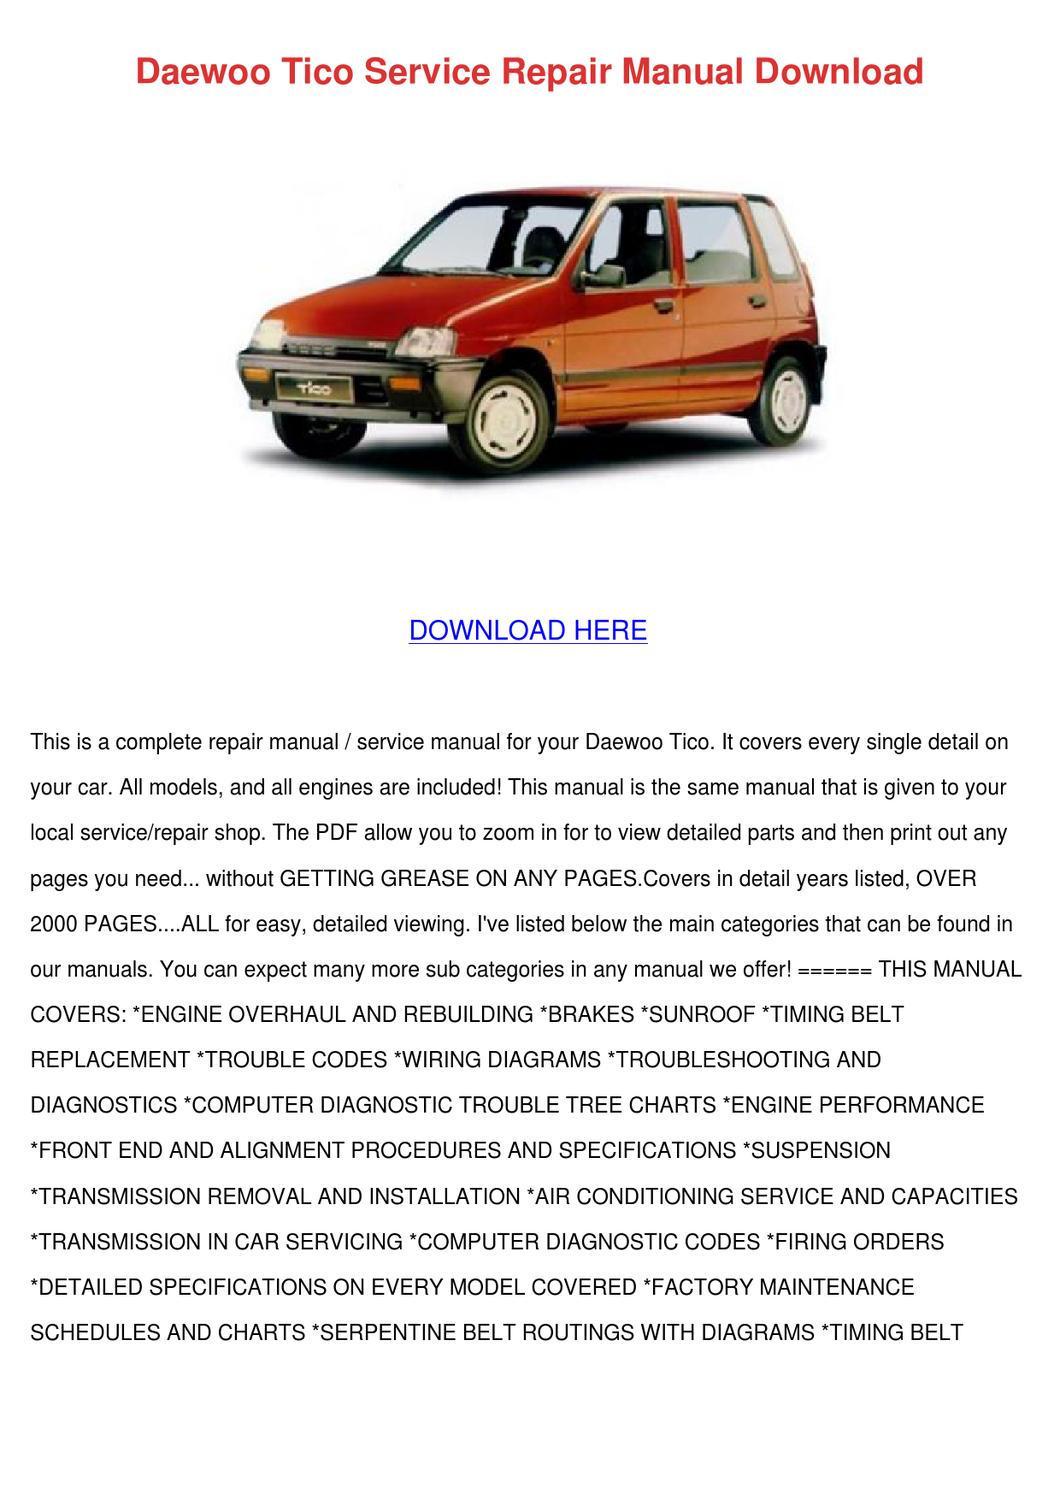 Daewoo Tico Service Repair Manual Download By Byronberube7 Issuu